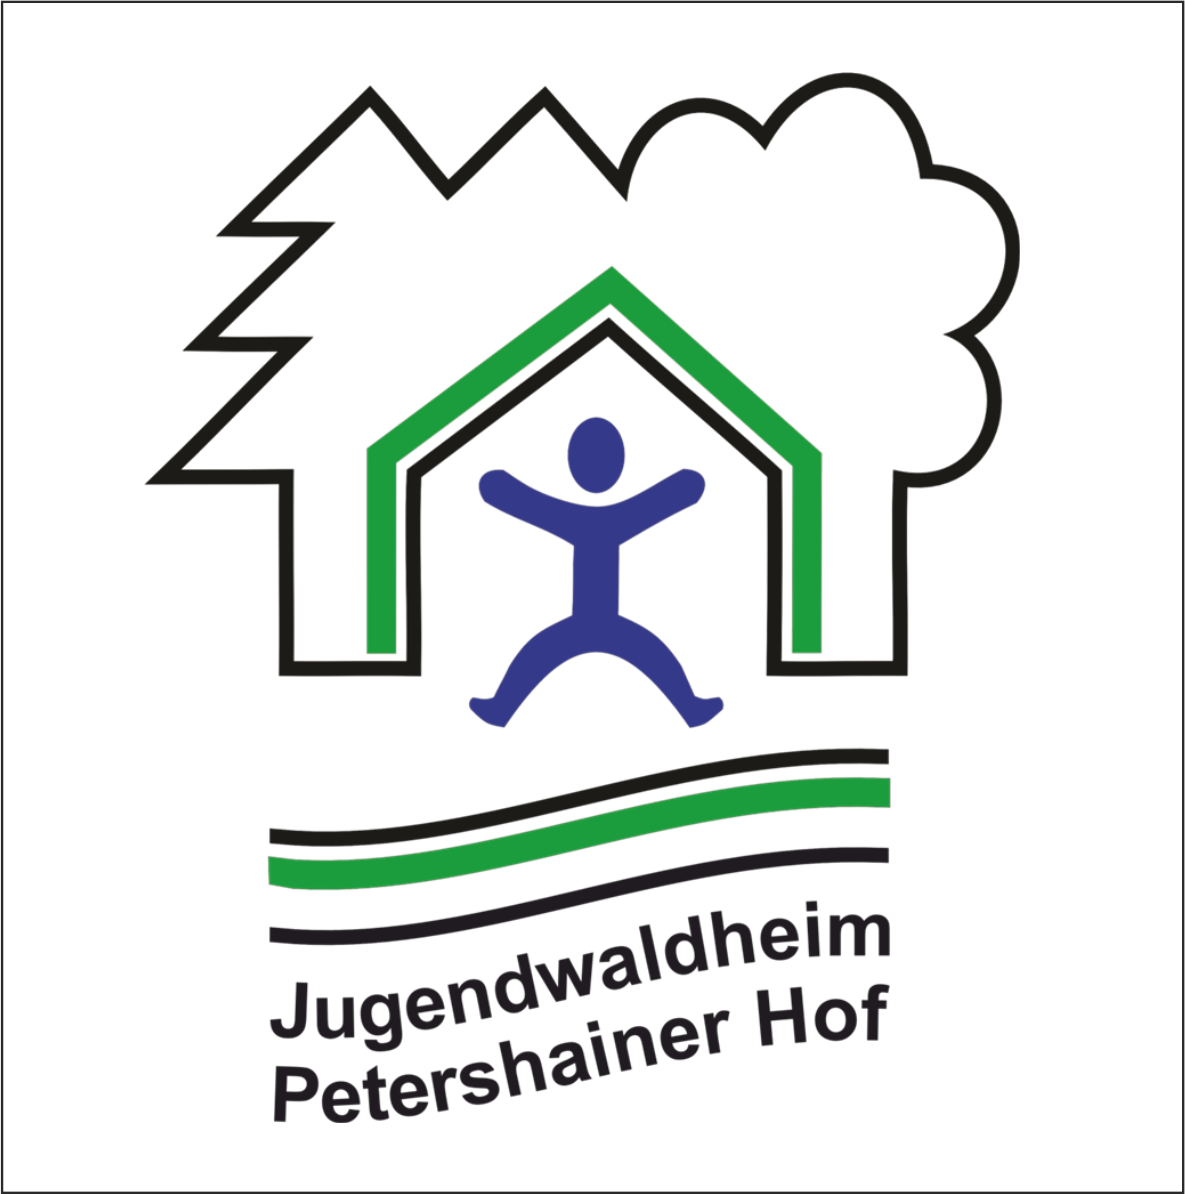 Jugendwaldheim Petershainer Hof